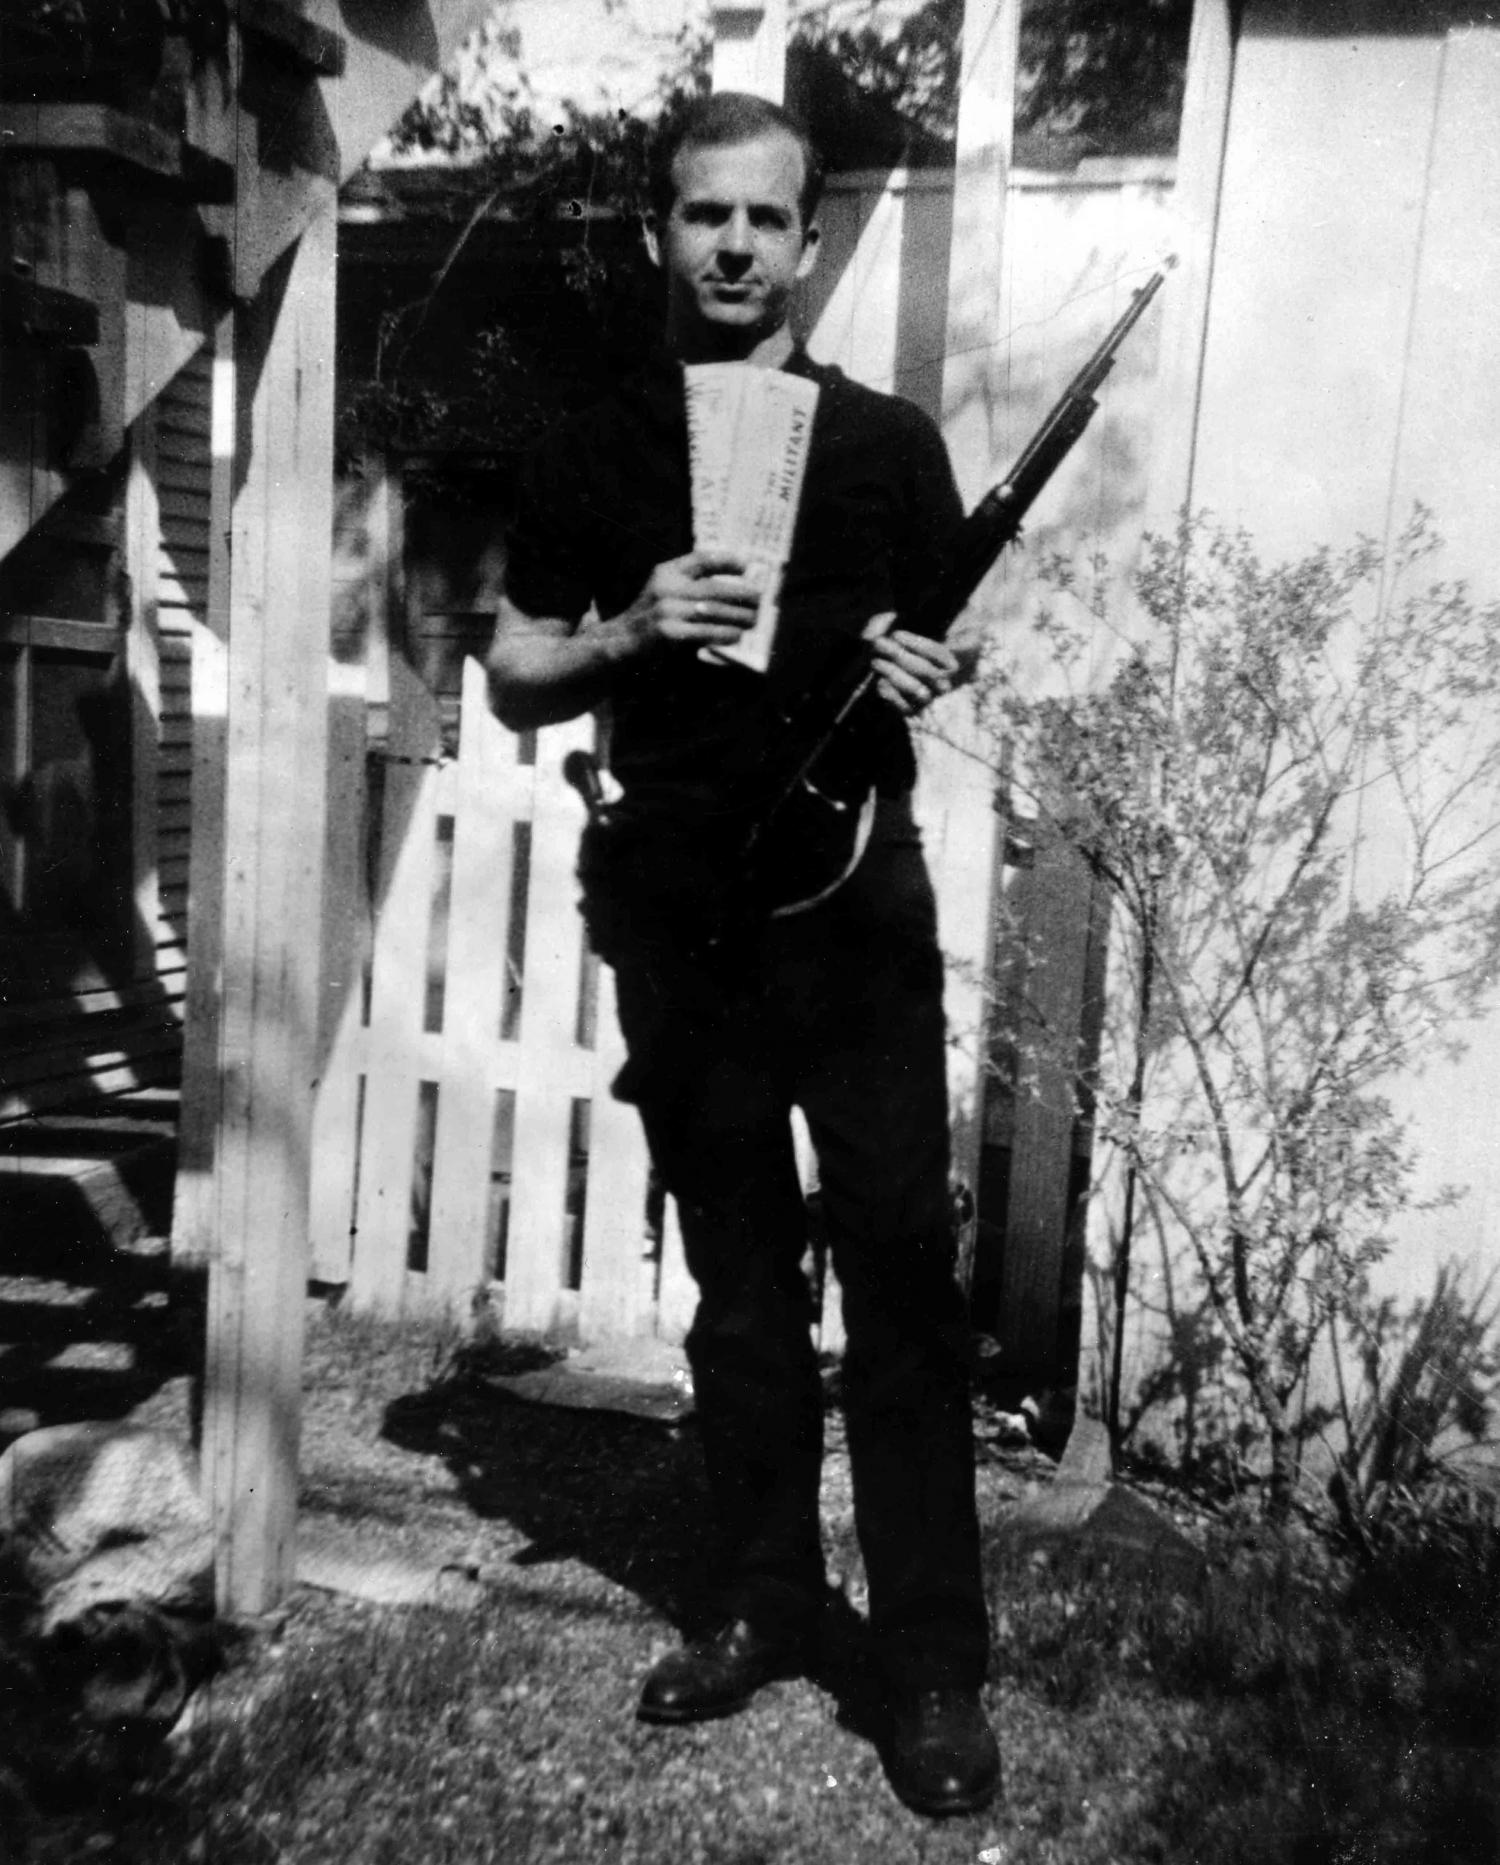 backyard photo of lee harvey oswald is authentic study shows